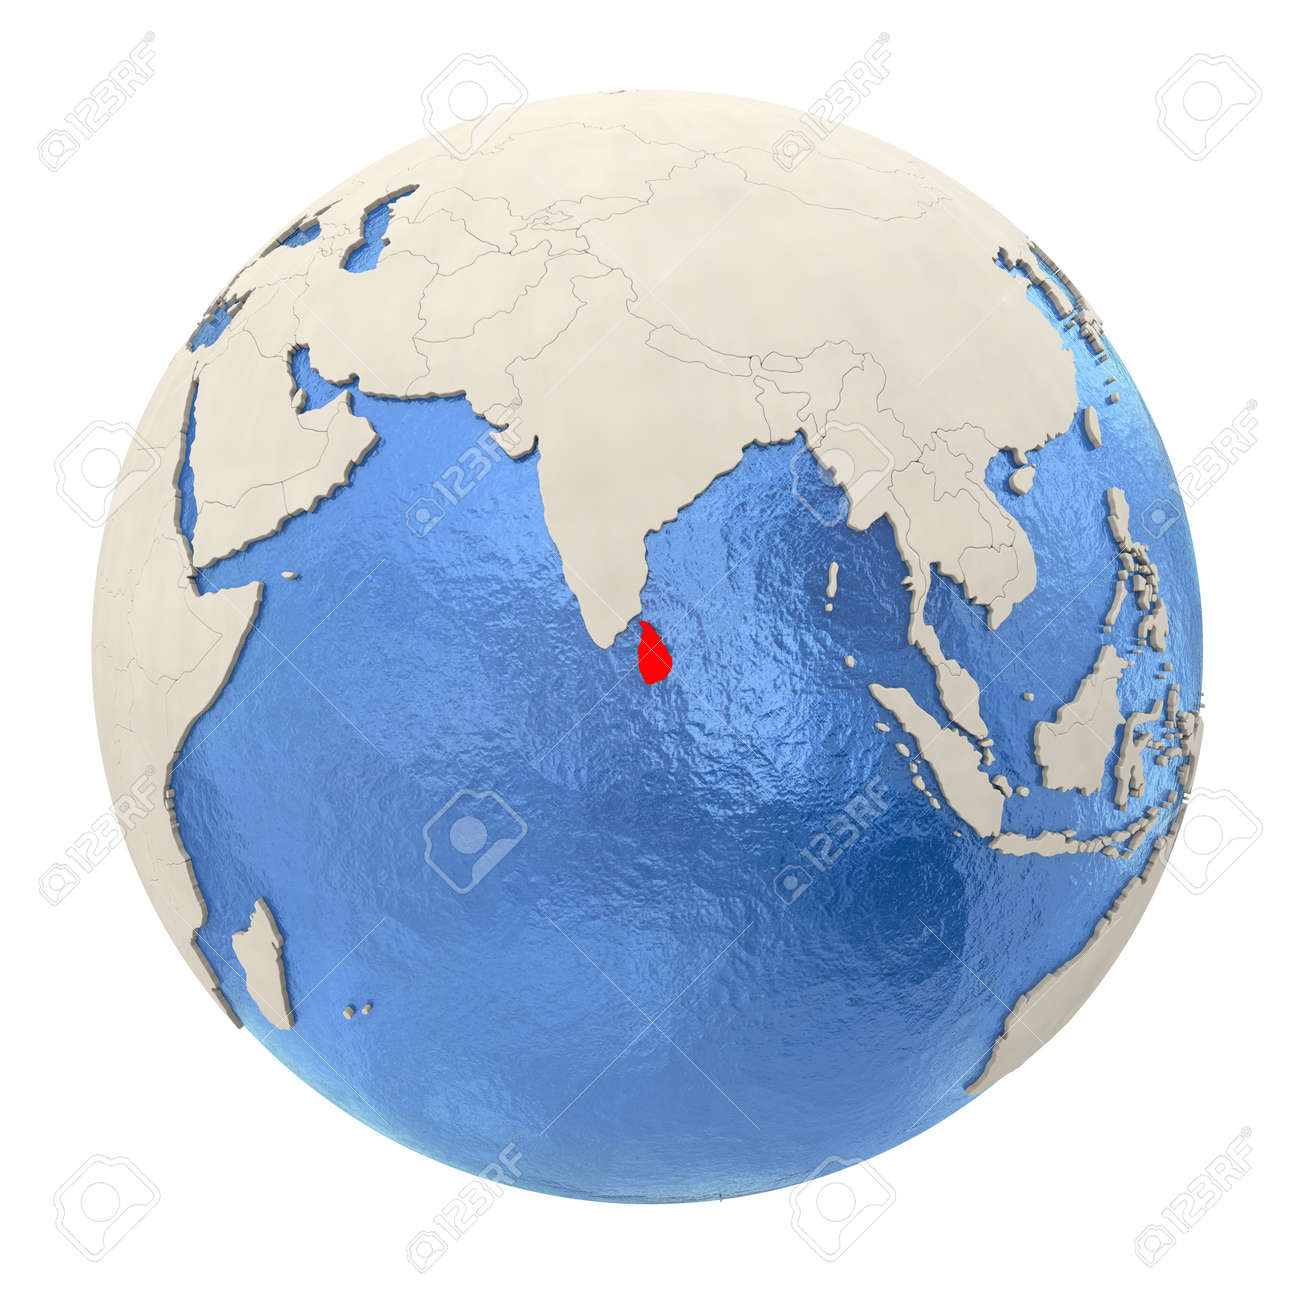 Sri Lanka Political Map.Map Of Sri Lanka On Political Globe With Watery Oceans And Embossed